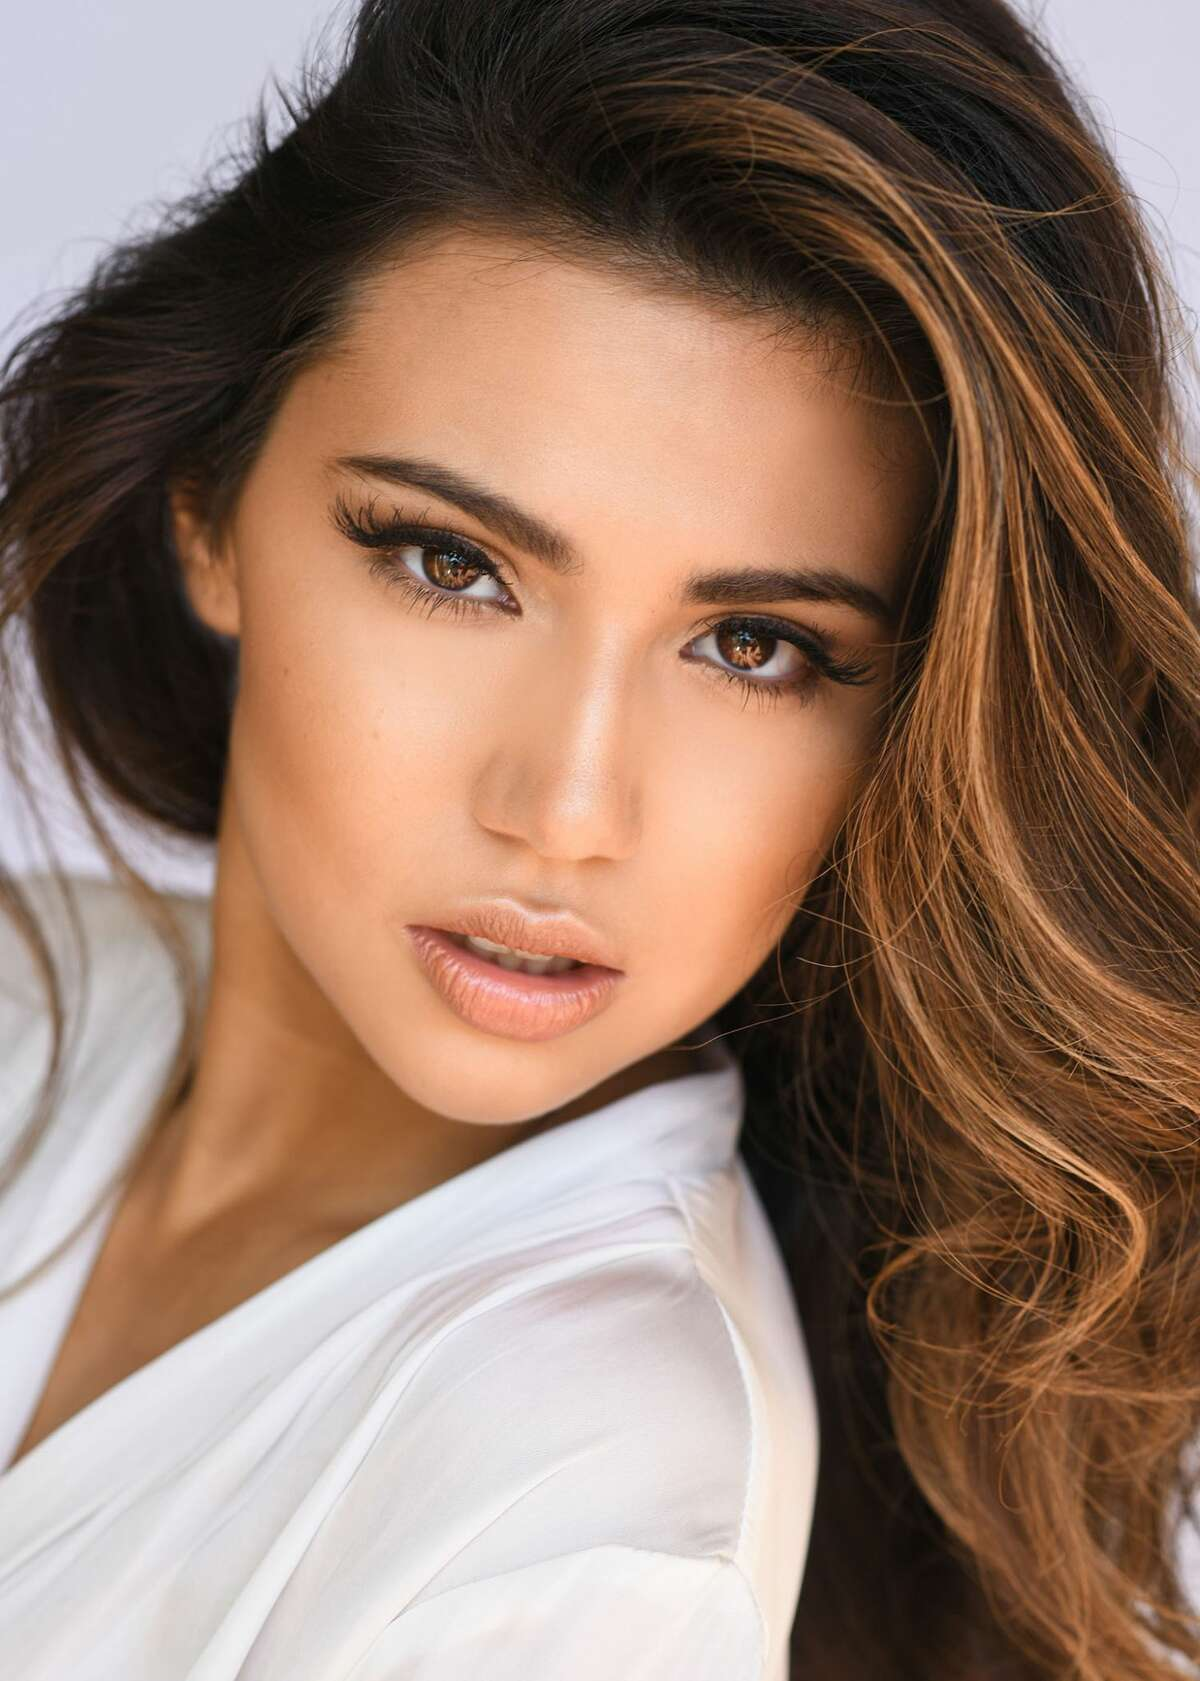 Pasadena resident Gabriella Garza, 25,is in the Miss Texas USA 2021 pageant scheduled for Sept. 3-4. She won the Miss Kemah pageant in July 2020 and has reigned more than 12 months because last year's state pageant was postponed due to the pandemic.